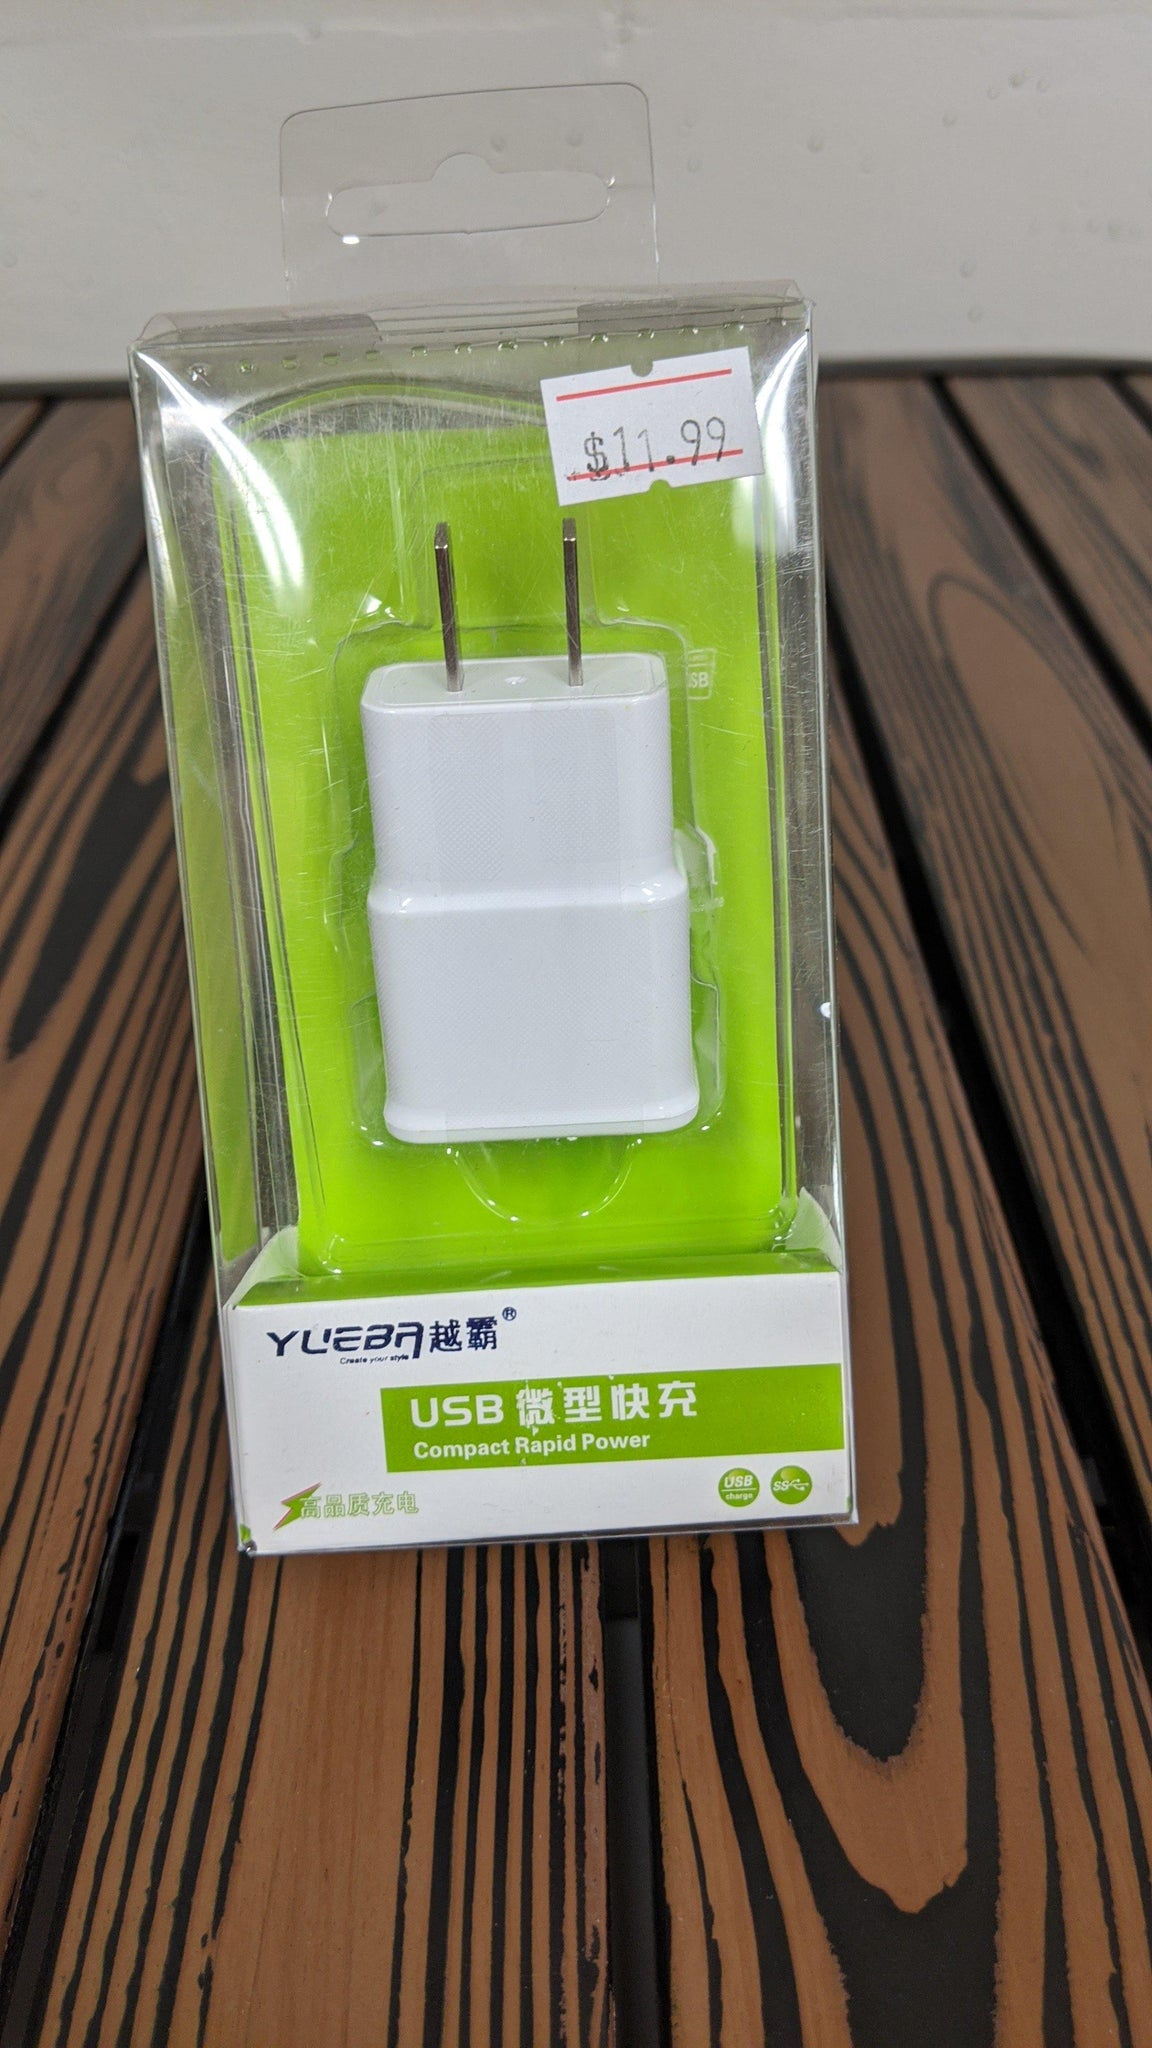 USB Compact Rapid power